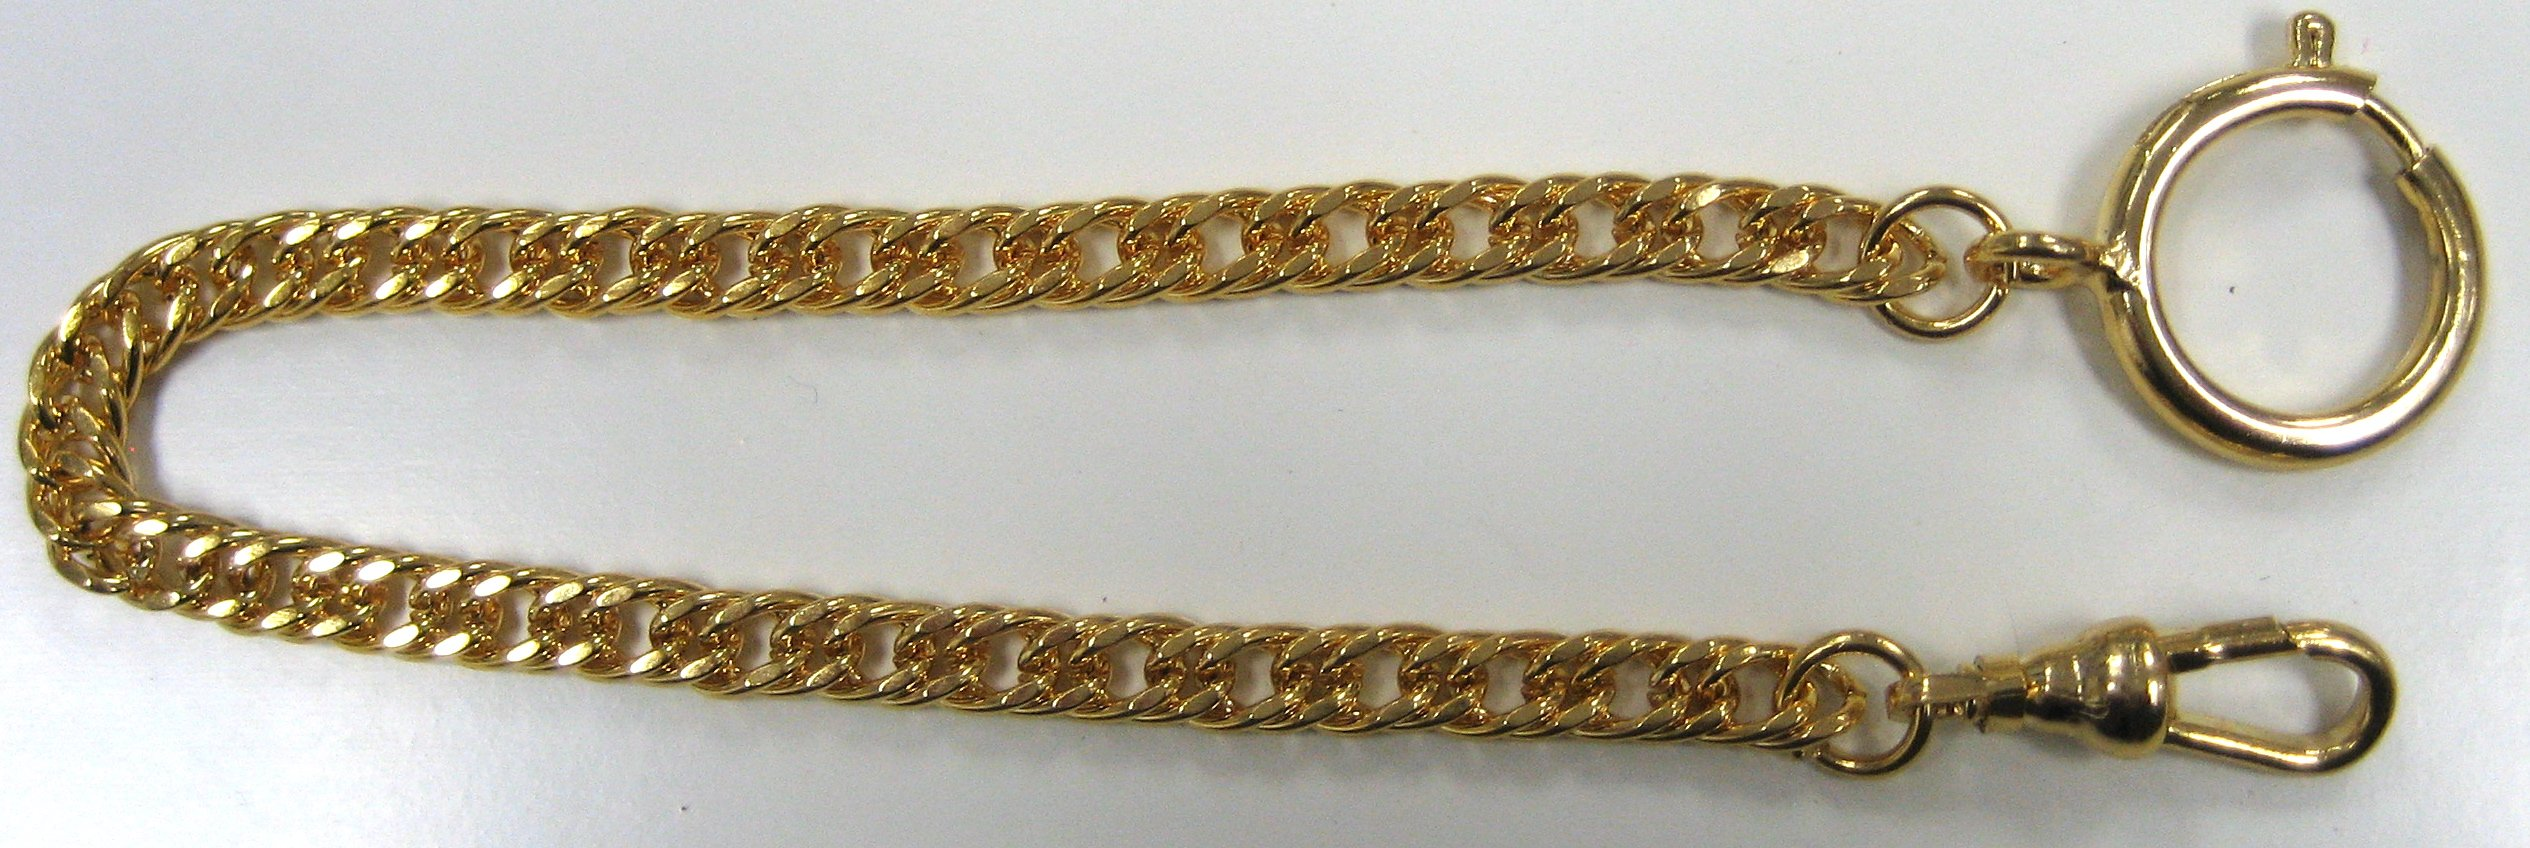 Gold Stainless Steel Pocket Watch Vest Chain FOB